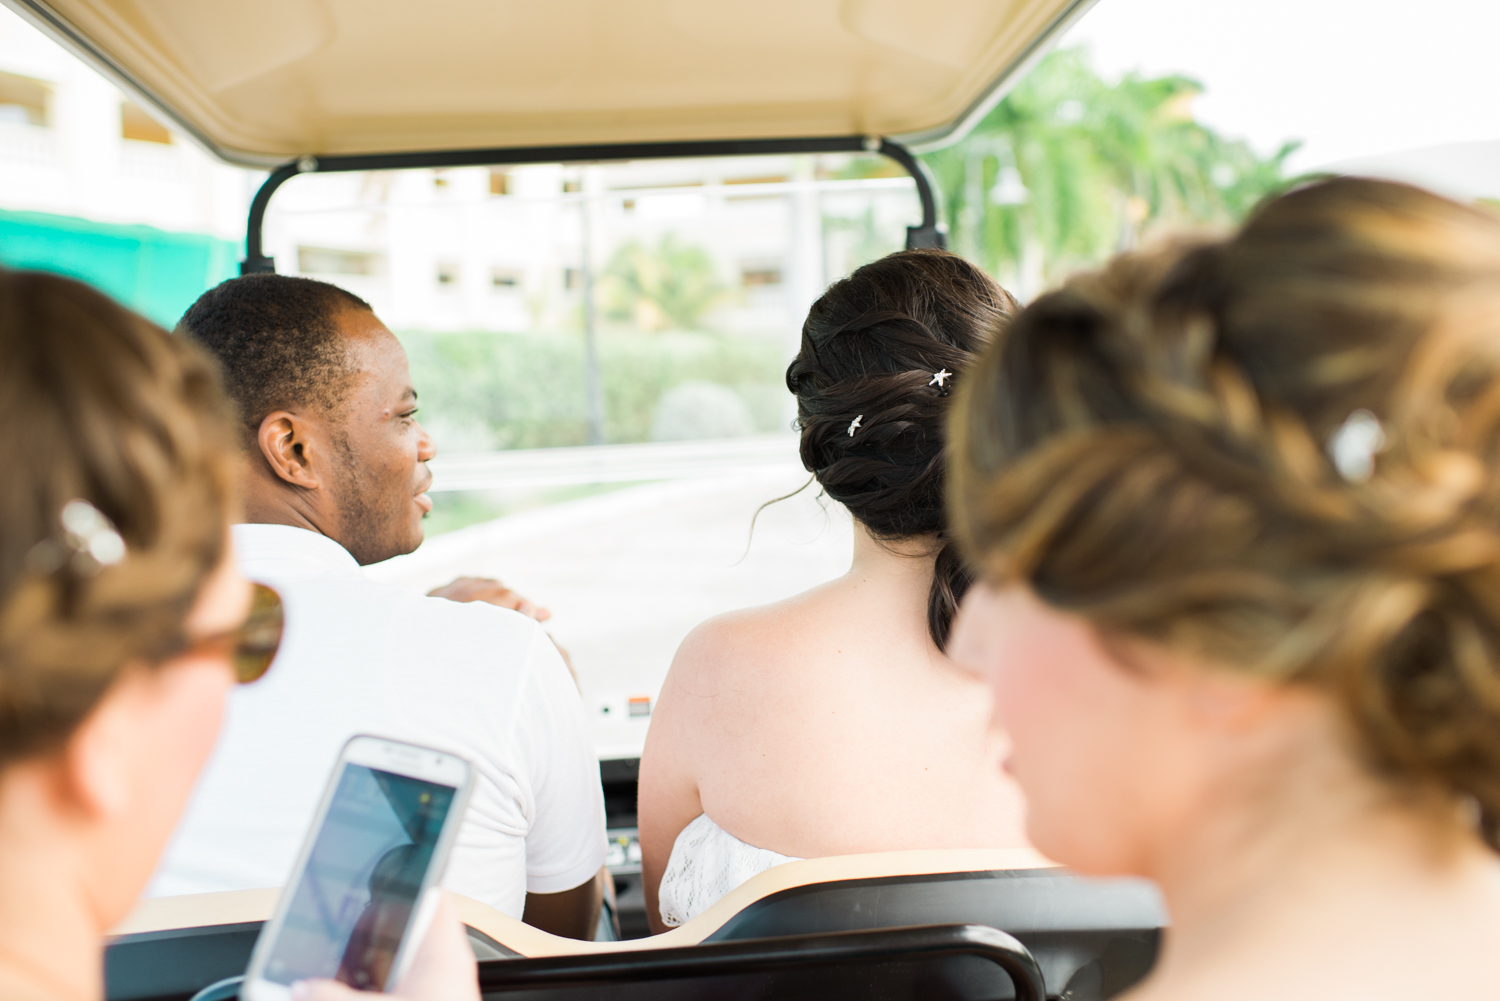 JadeandRyan-Montego-Bay-Jamaica-Wedding-Iberostar-Resort-Beach-5.jpg